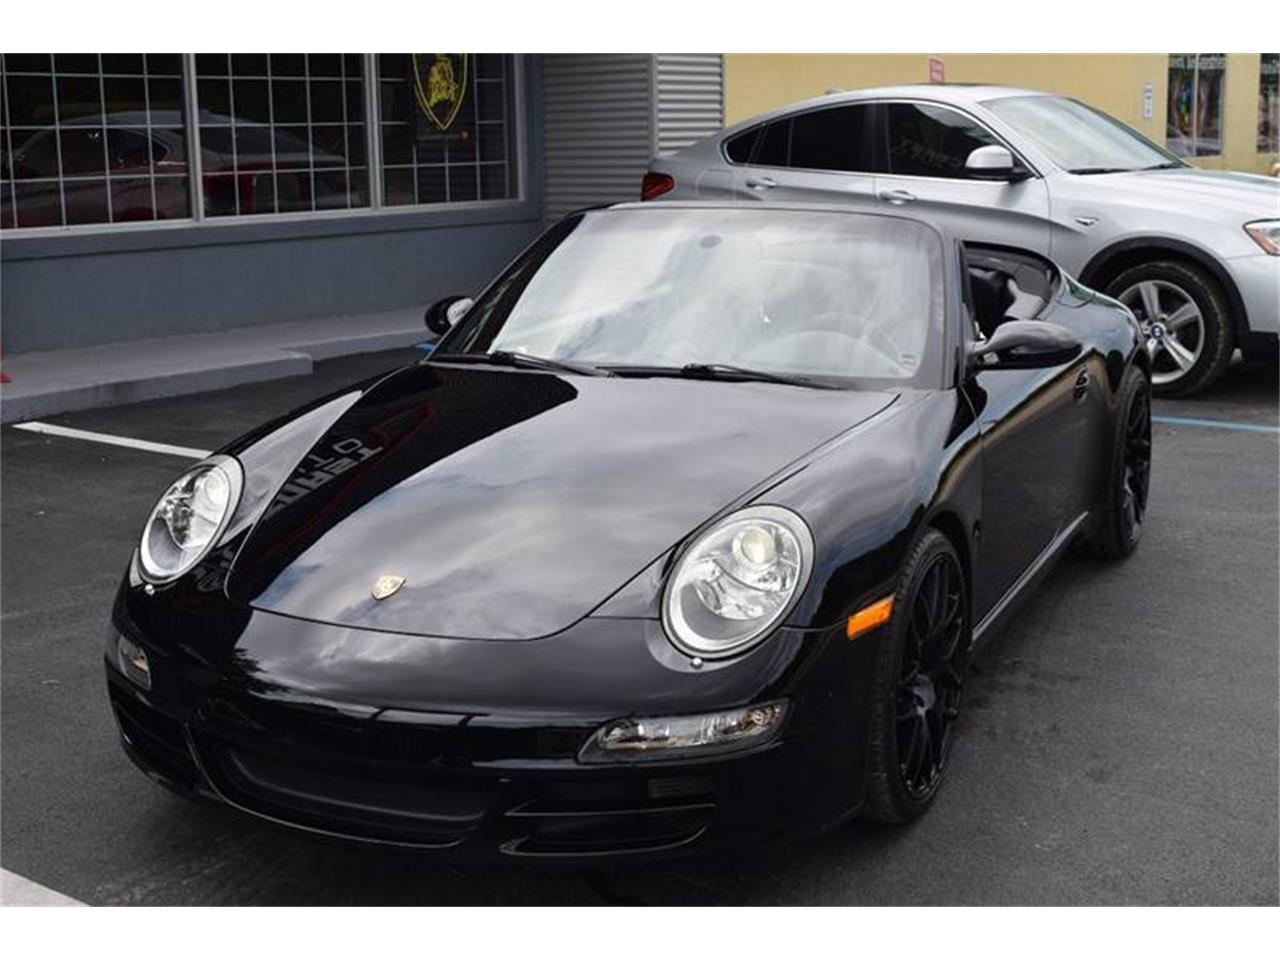 2006 Porsche 911 for sale in Biloxi, MS – photo 38